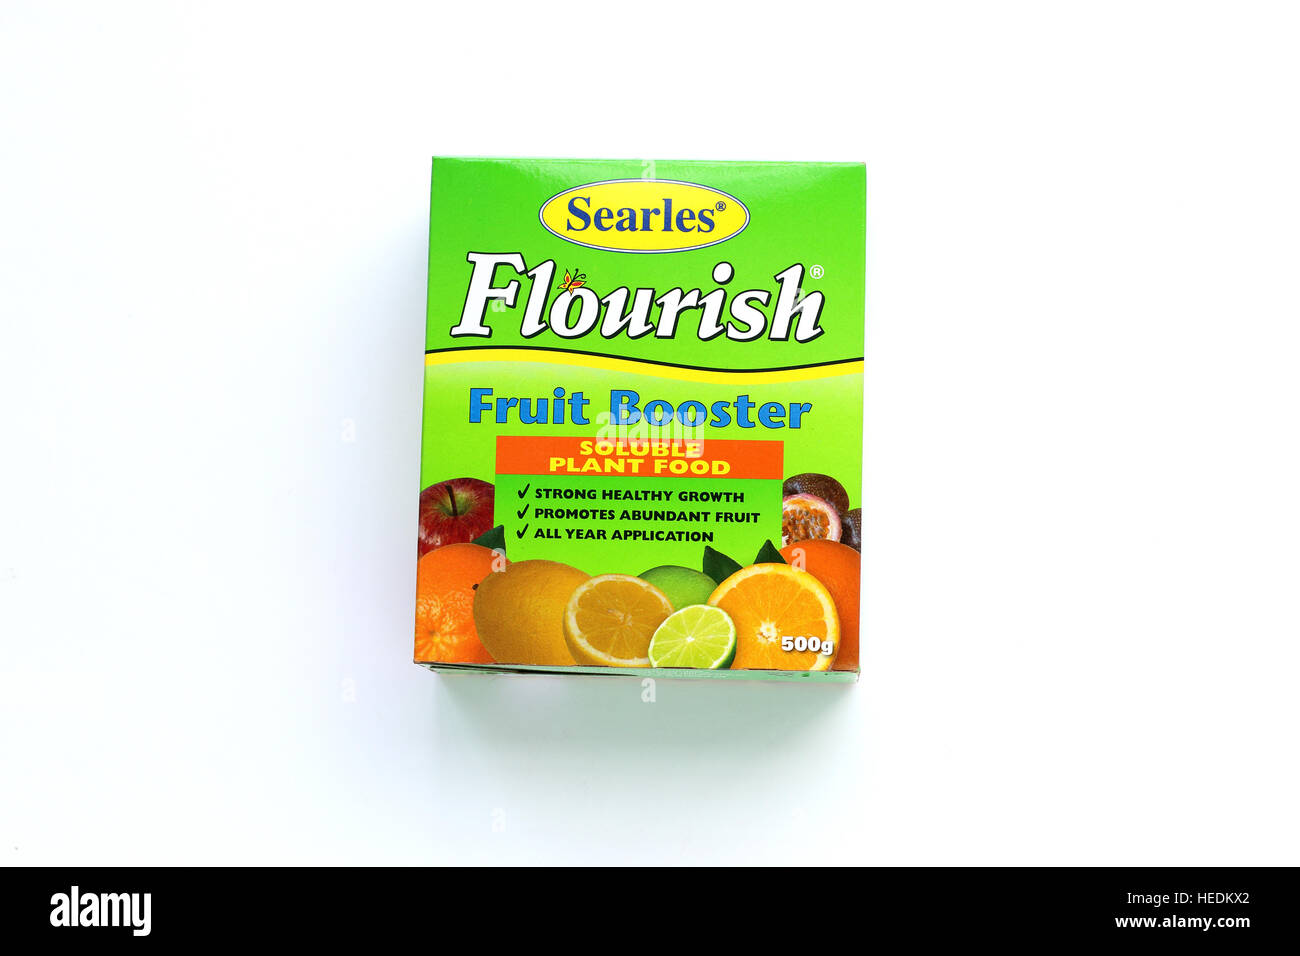 Searles Flourish Fruit Booster liquid and soluble fertilizer isolated against white background - Stock Image